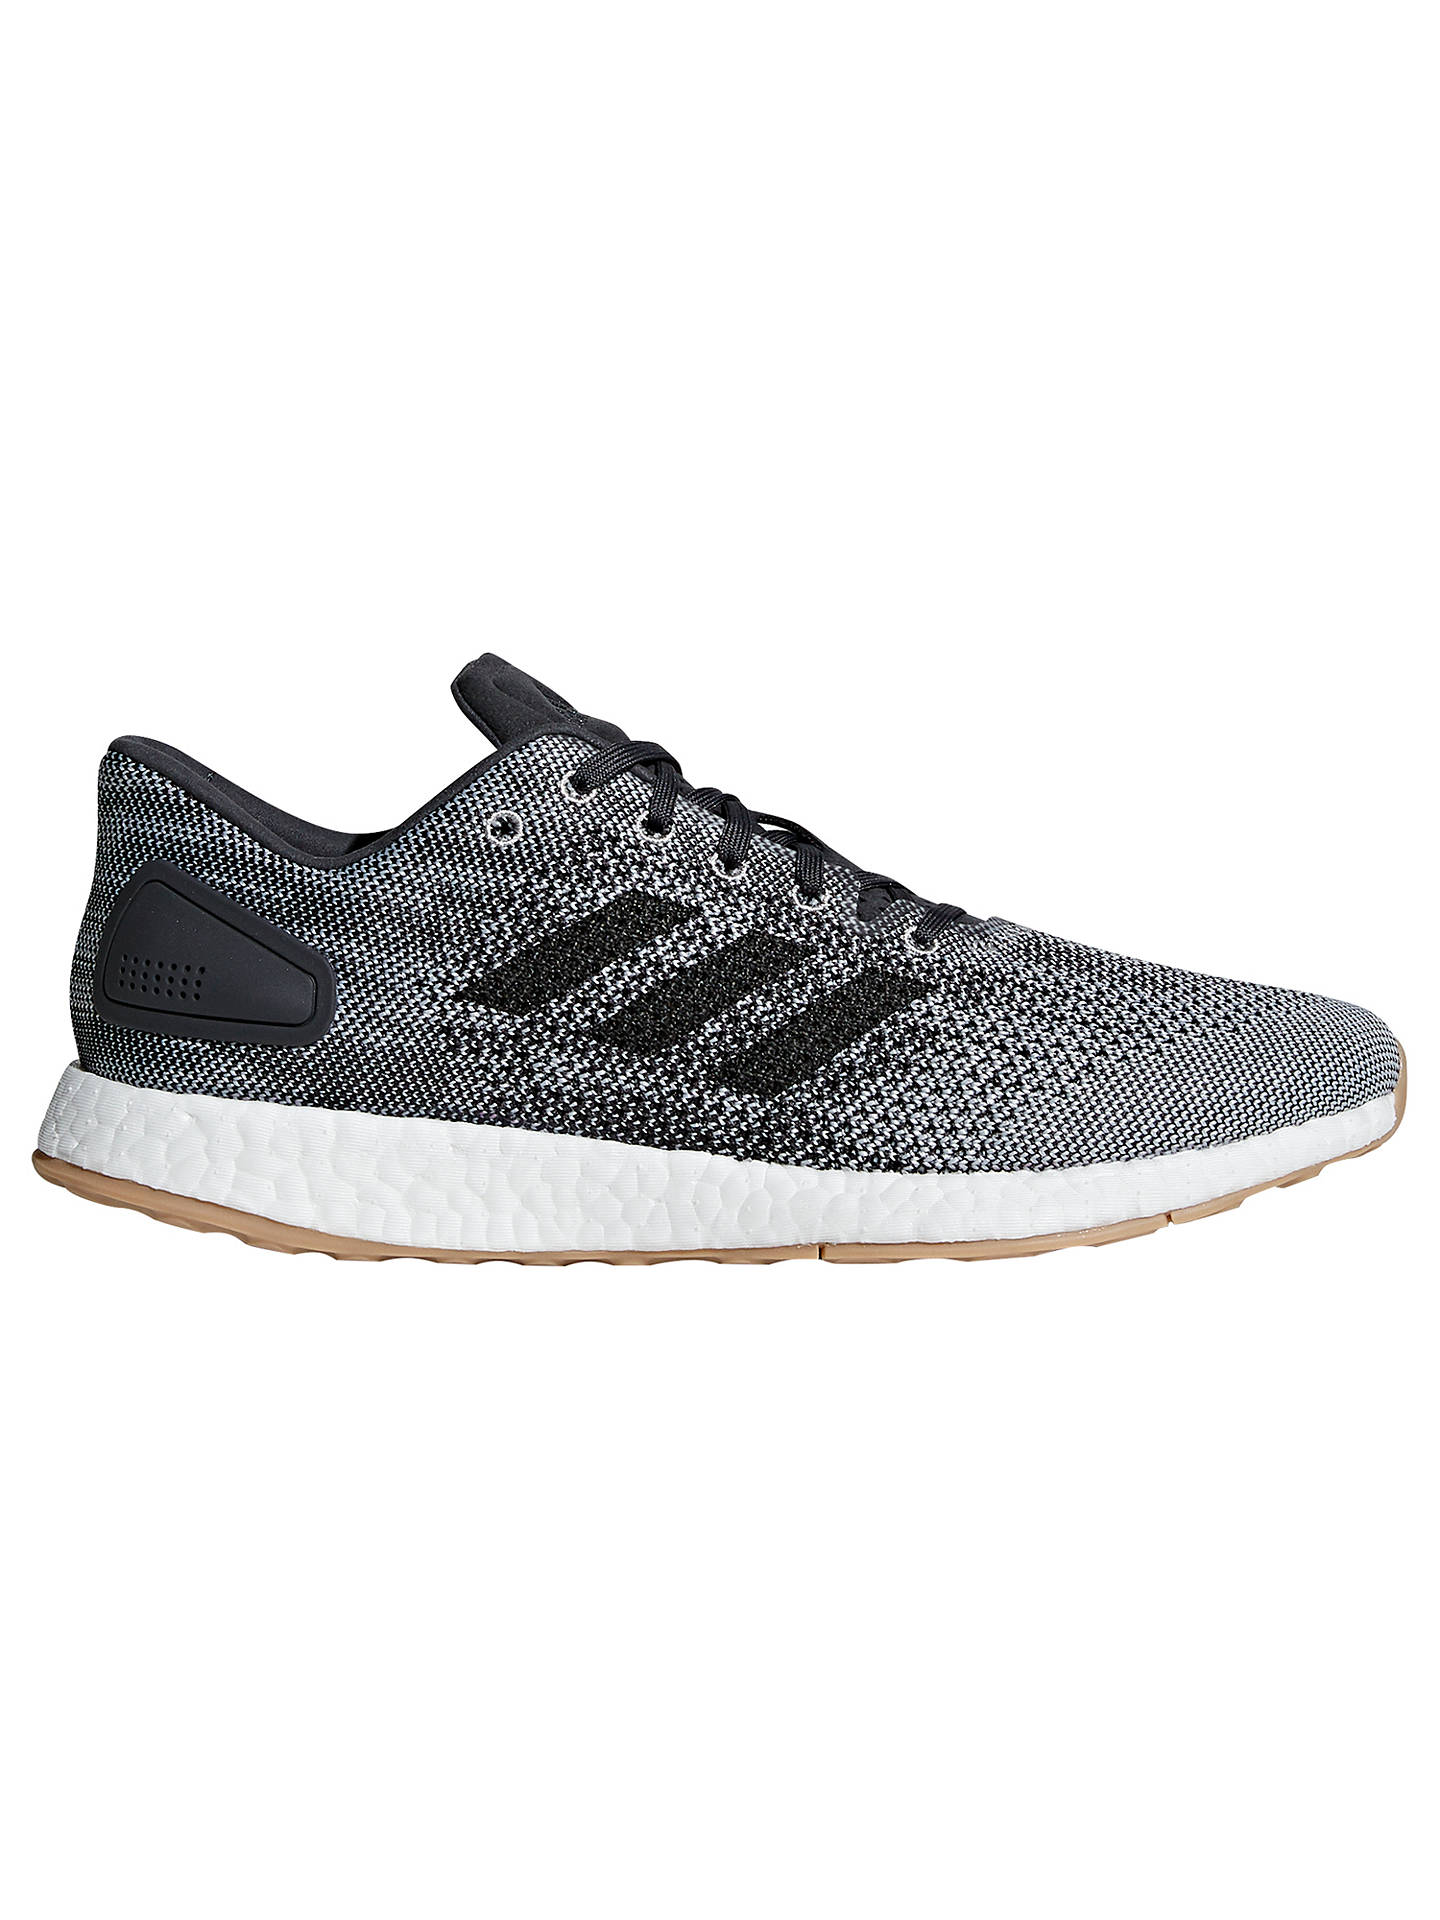 Buyadidas Pureboost DPR Men's Running Shoes, Core Black, 7 Online at johnlewis.com